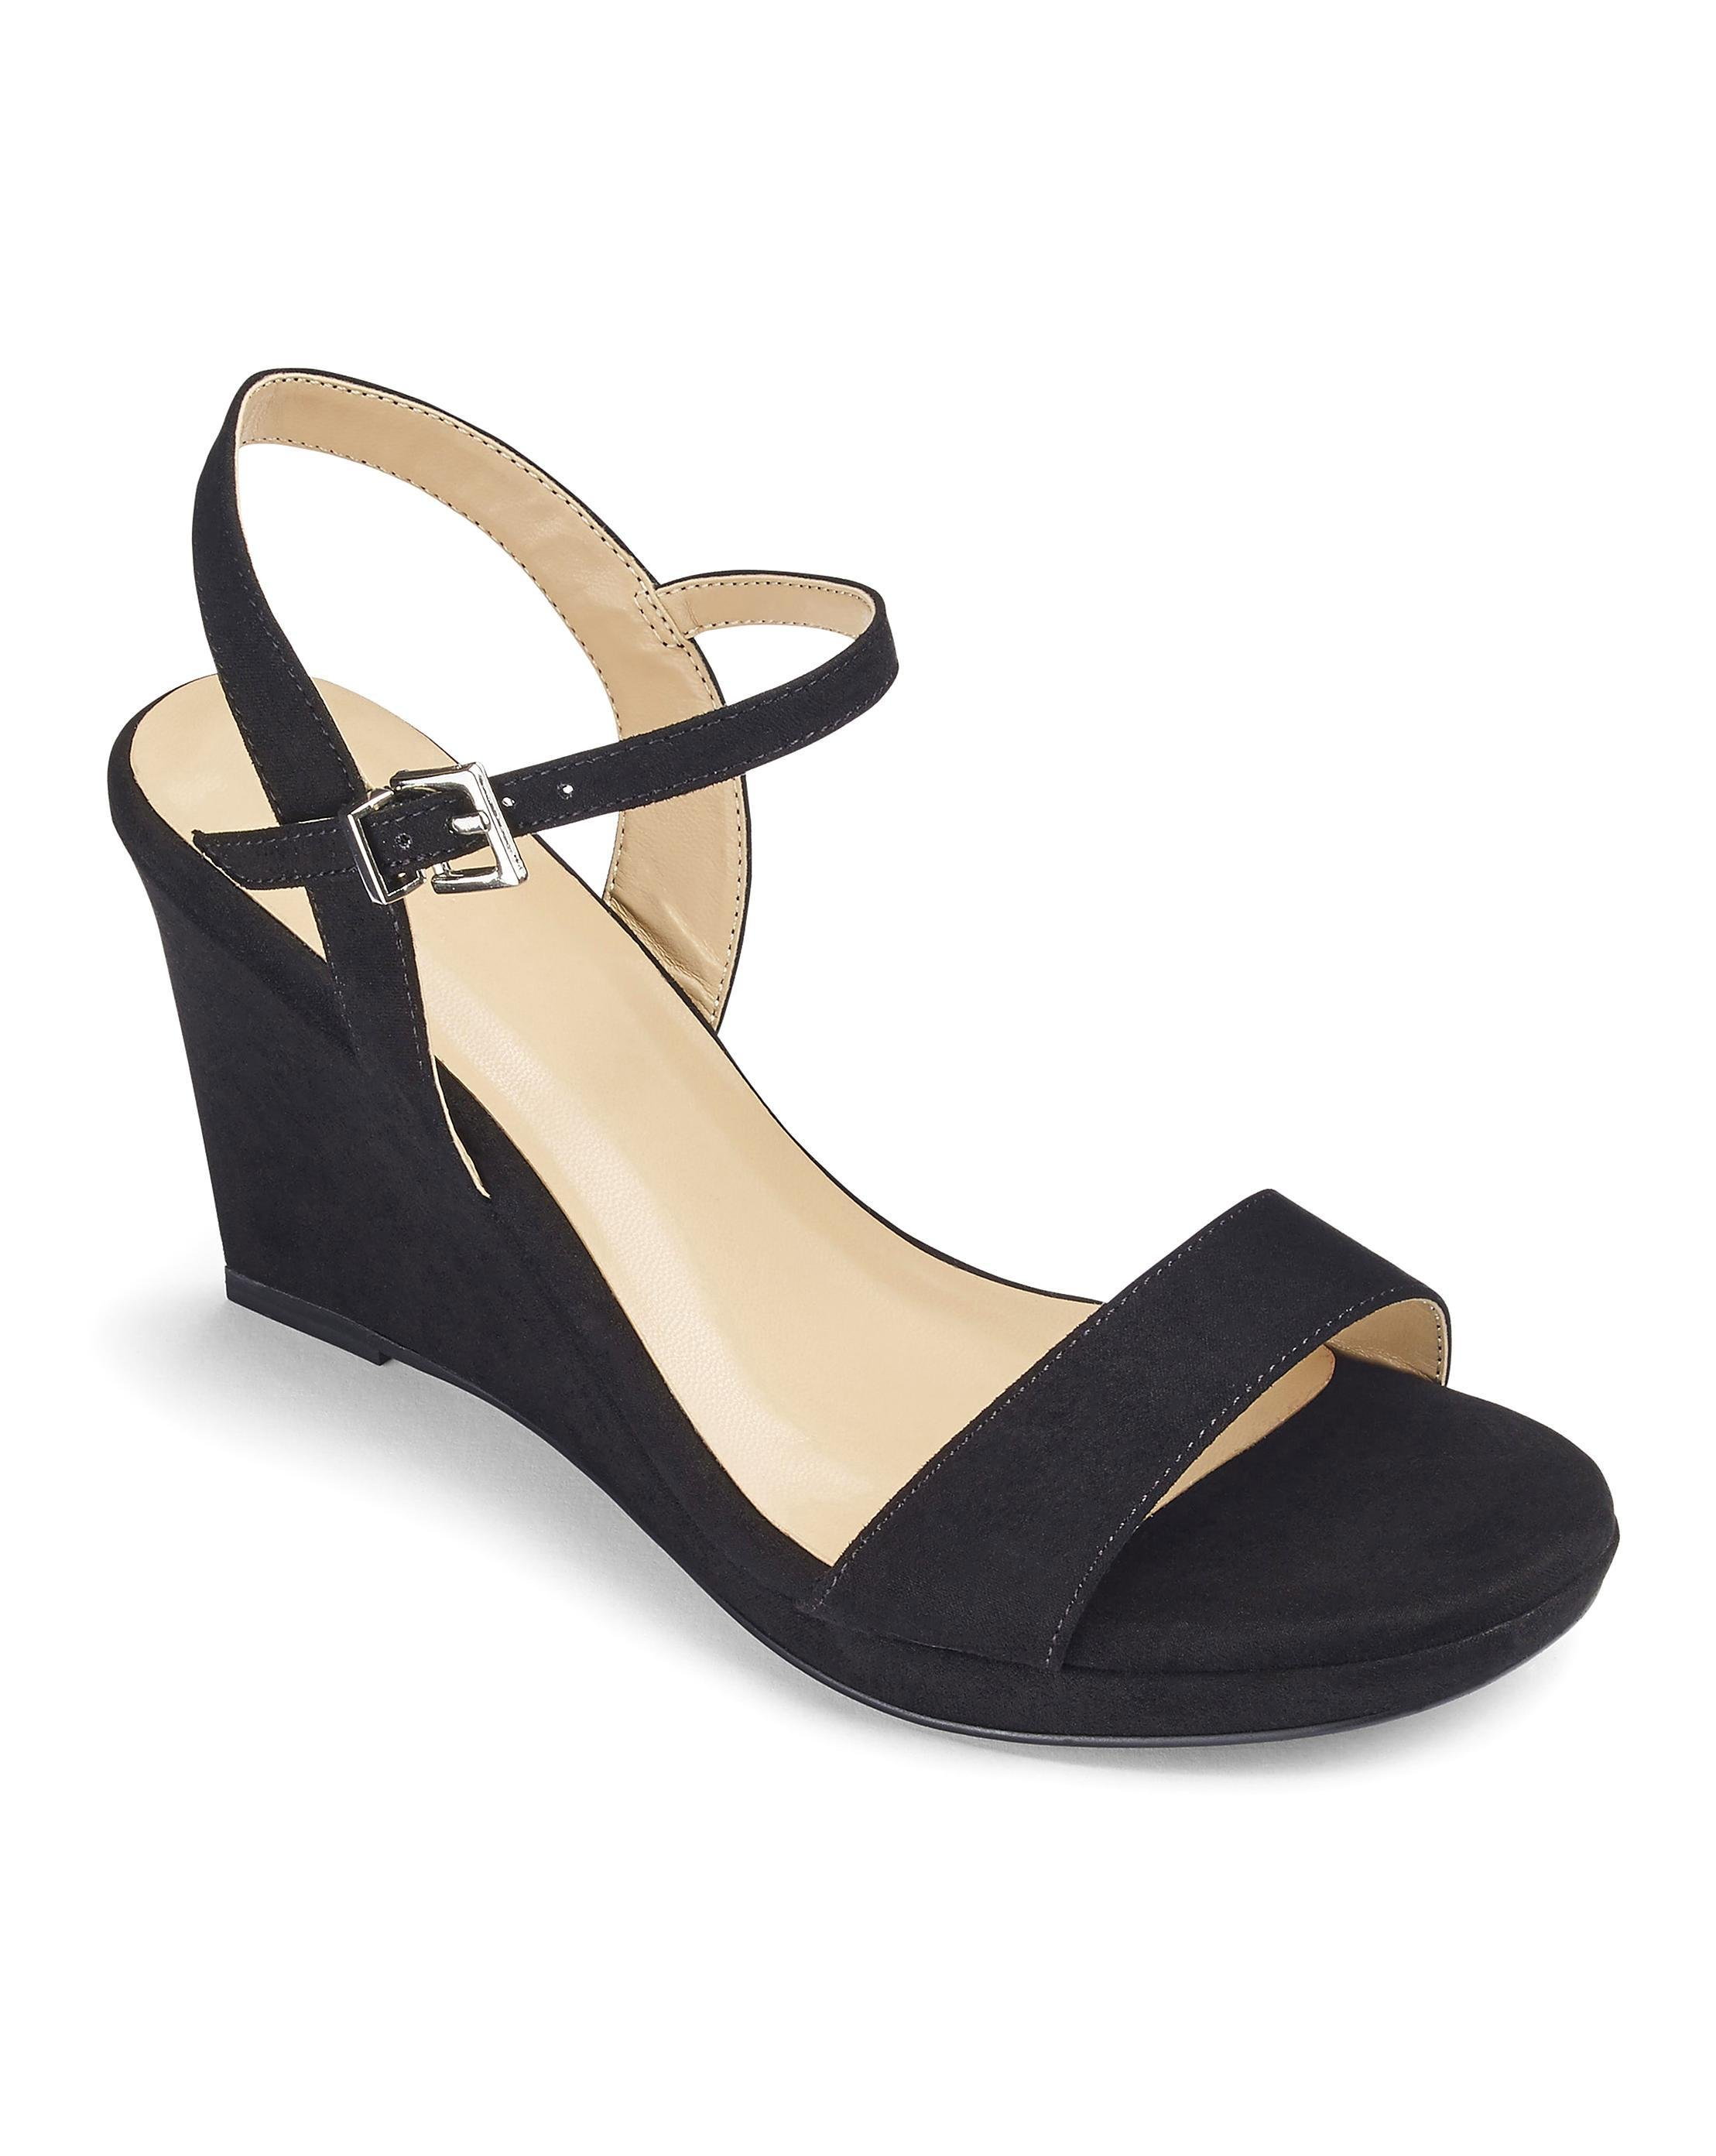 clearance for sale pick a best cheap price Robyn Strappy Wedge free shipping big sale nvfNb